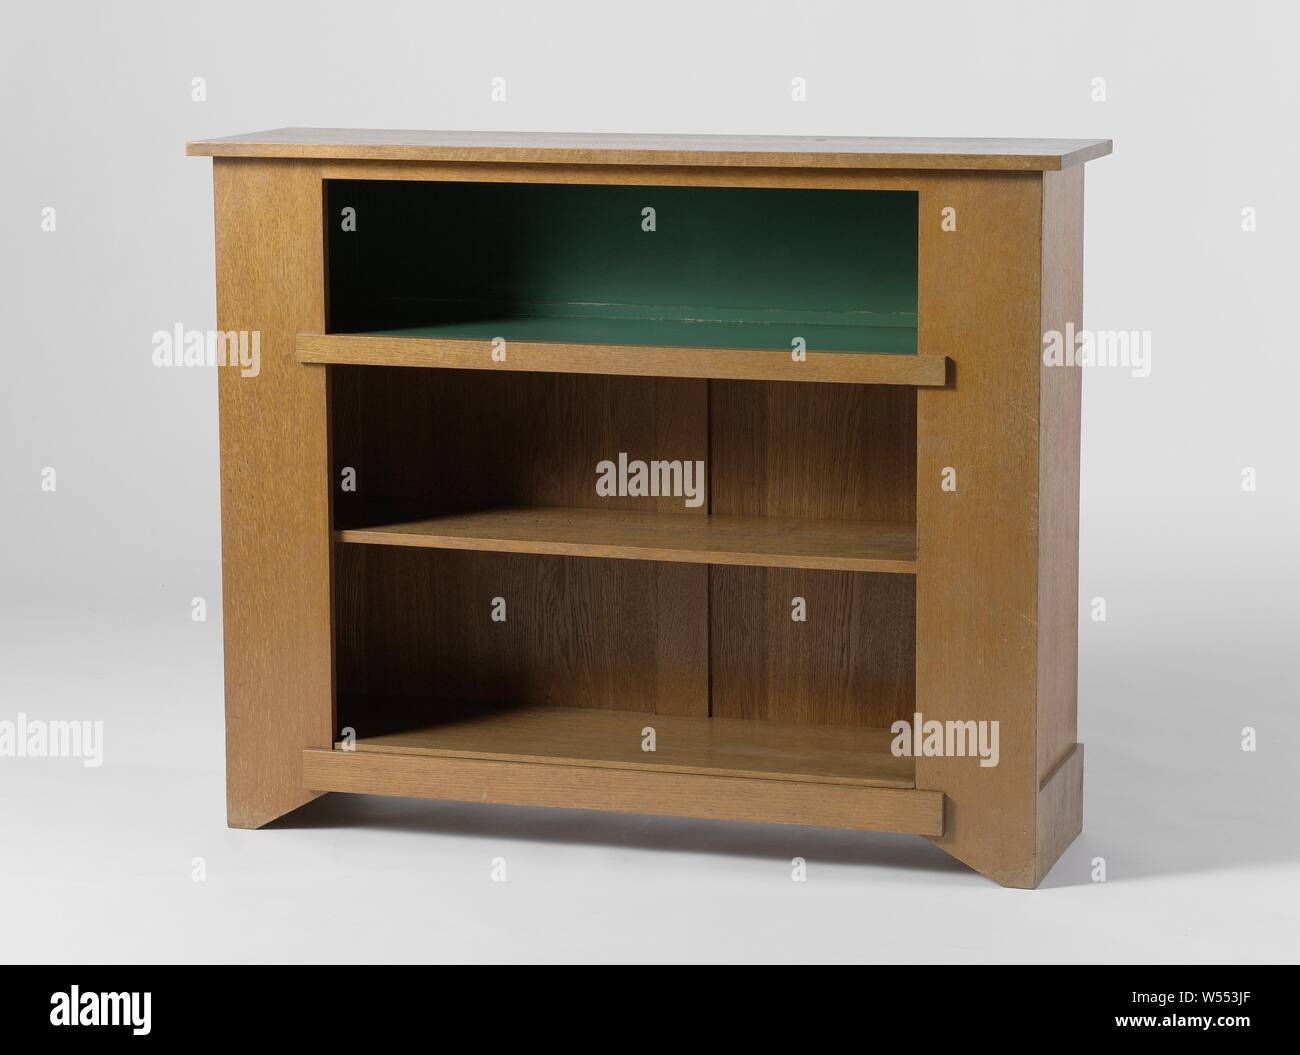 Bookcase With Three Shelves Bookcase Made Of Oak With Wide